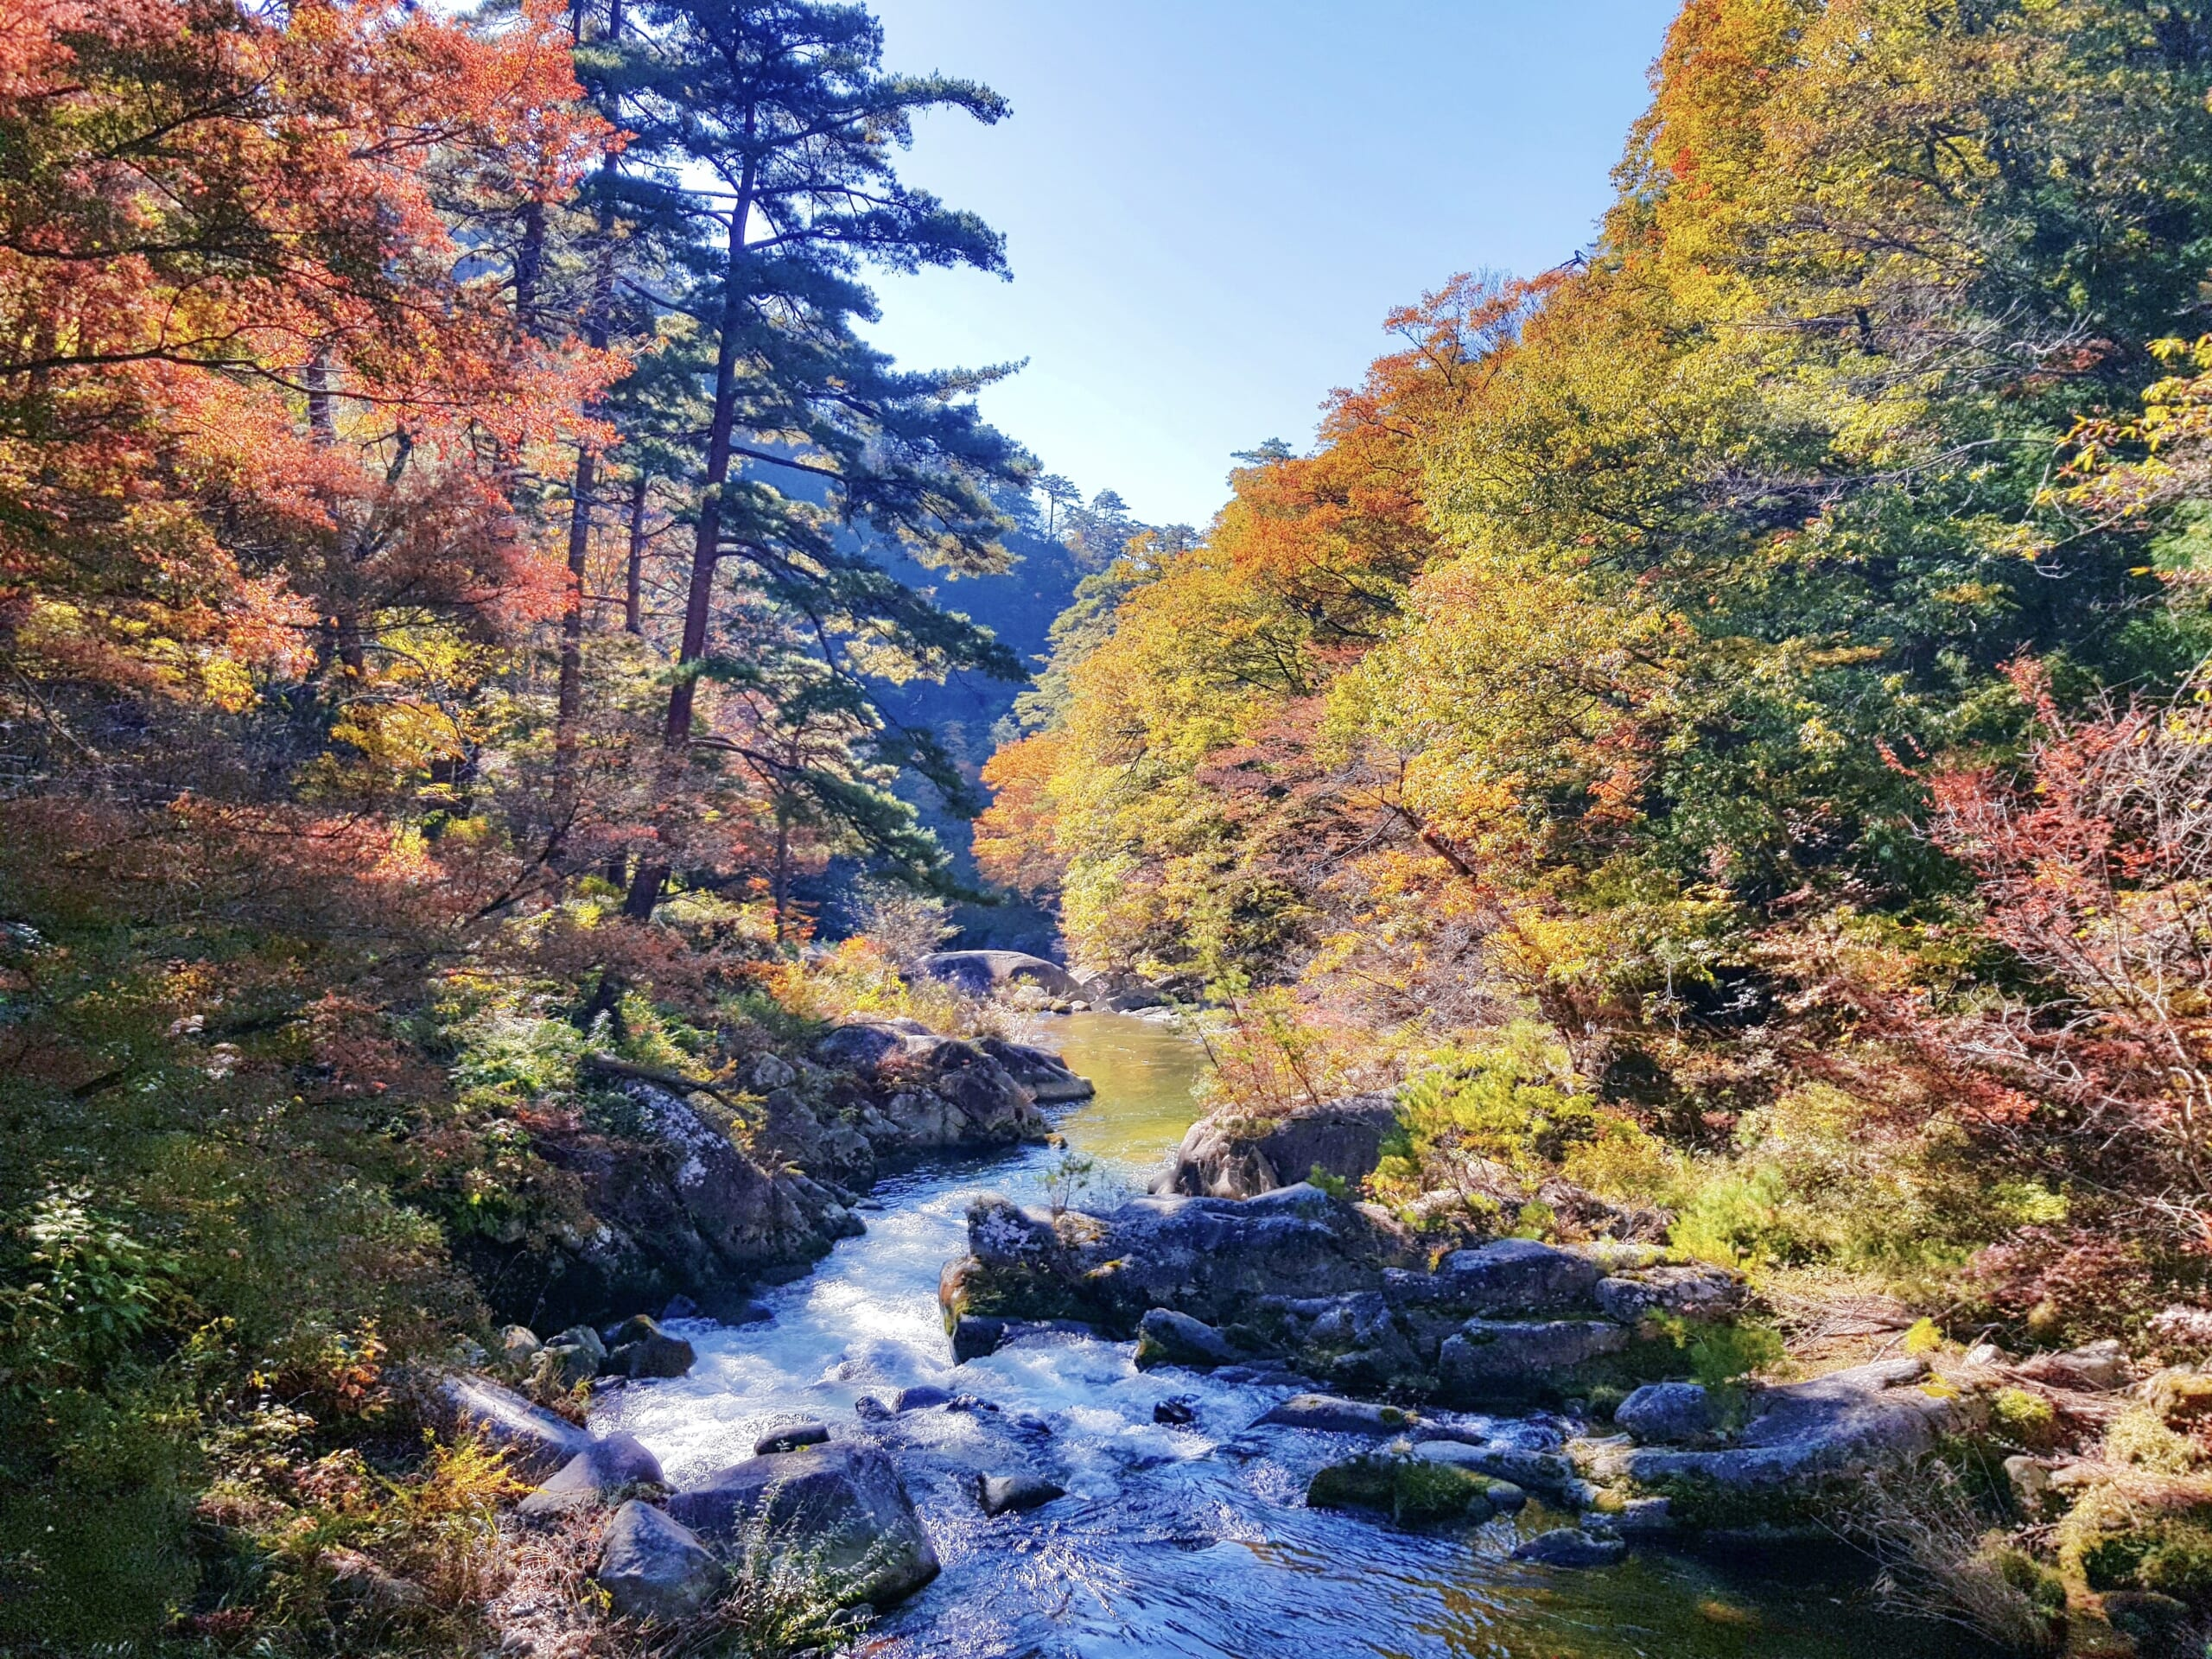 Kofu City and Shosenkyo Valley: A Journey in the Mountains of Yamanashi Prefecture